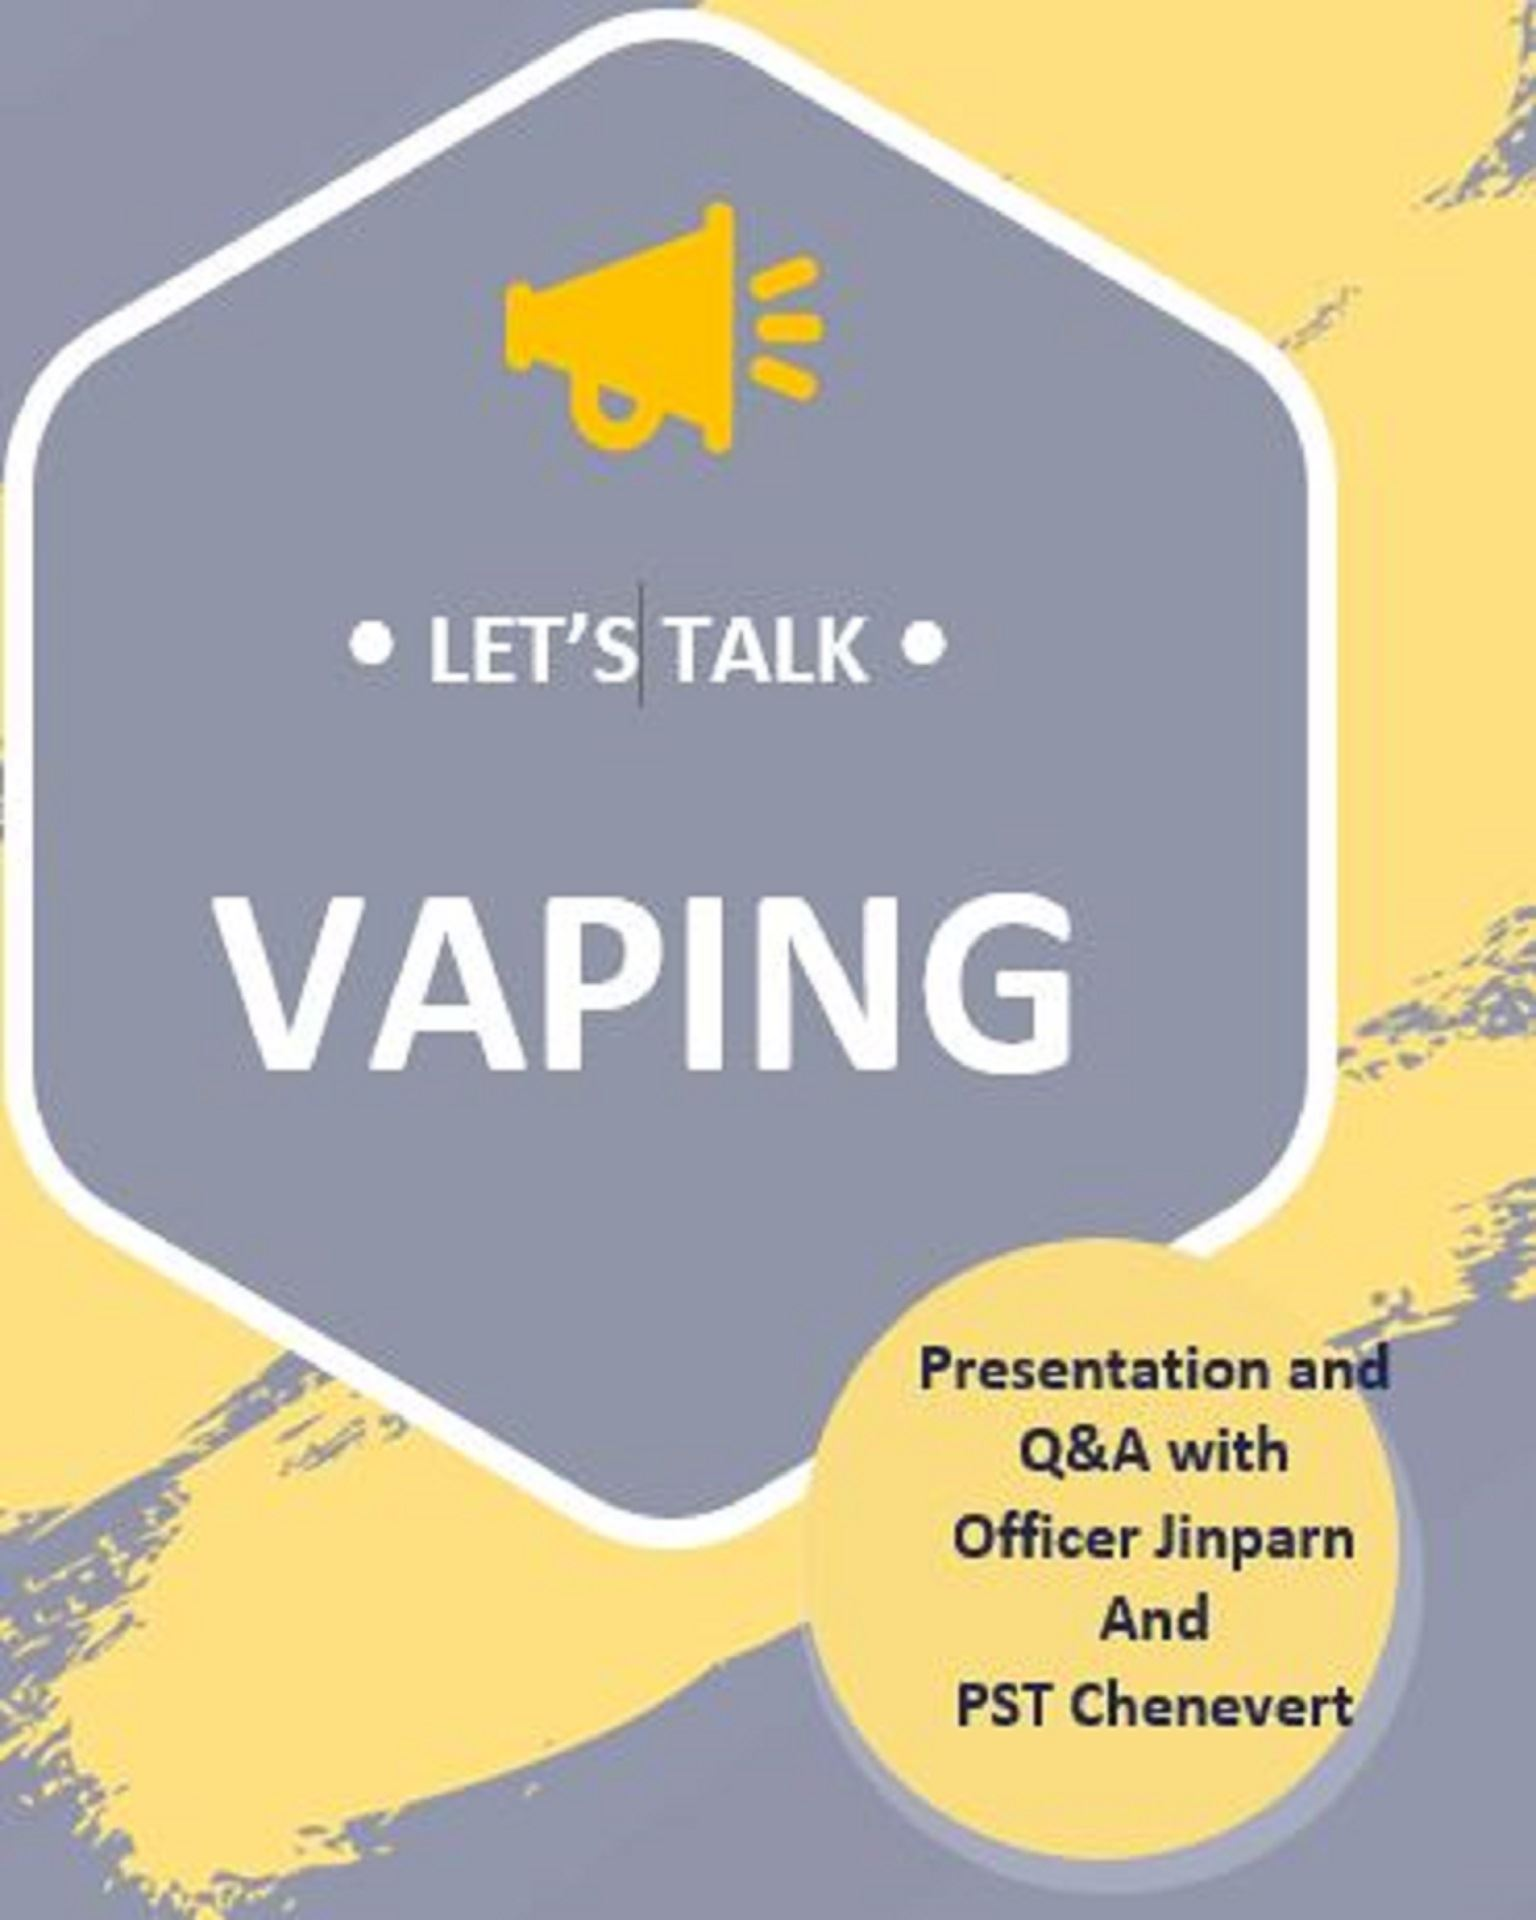 Vaping Class via Zoom on Tuesdays and Wednesdays